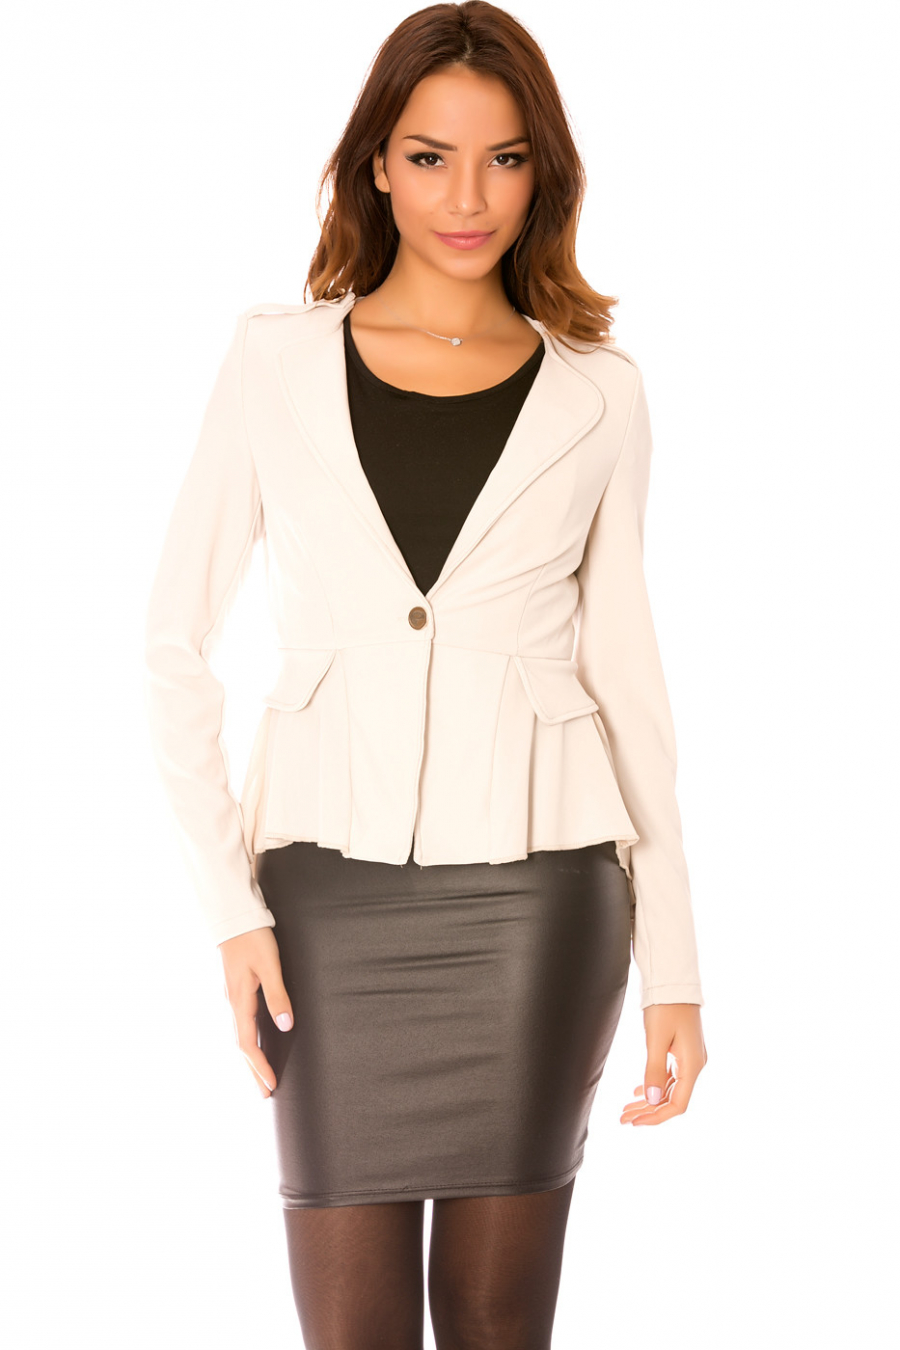 Beige blazer jacket with bow at the back and flared veil at the bottom.